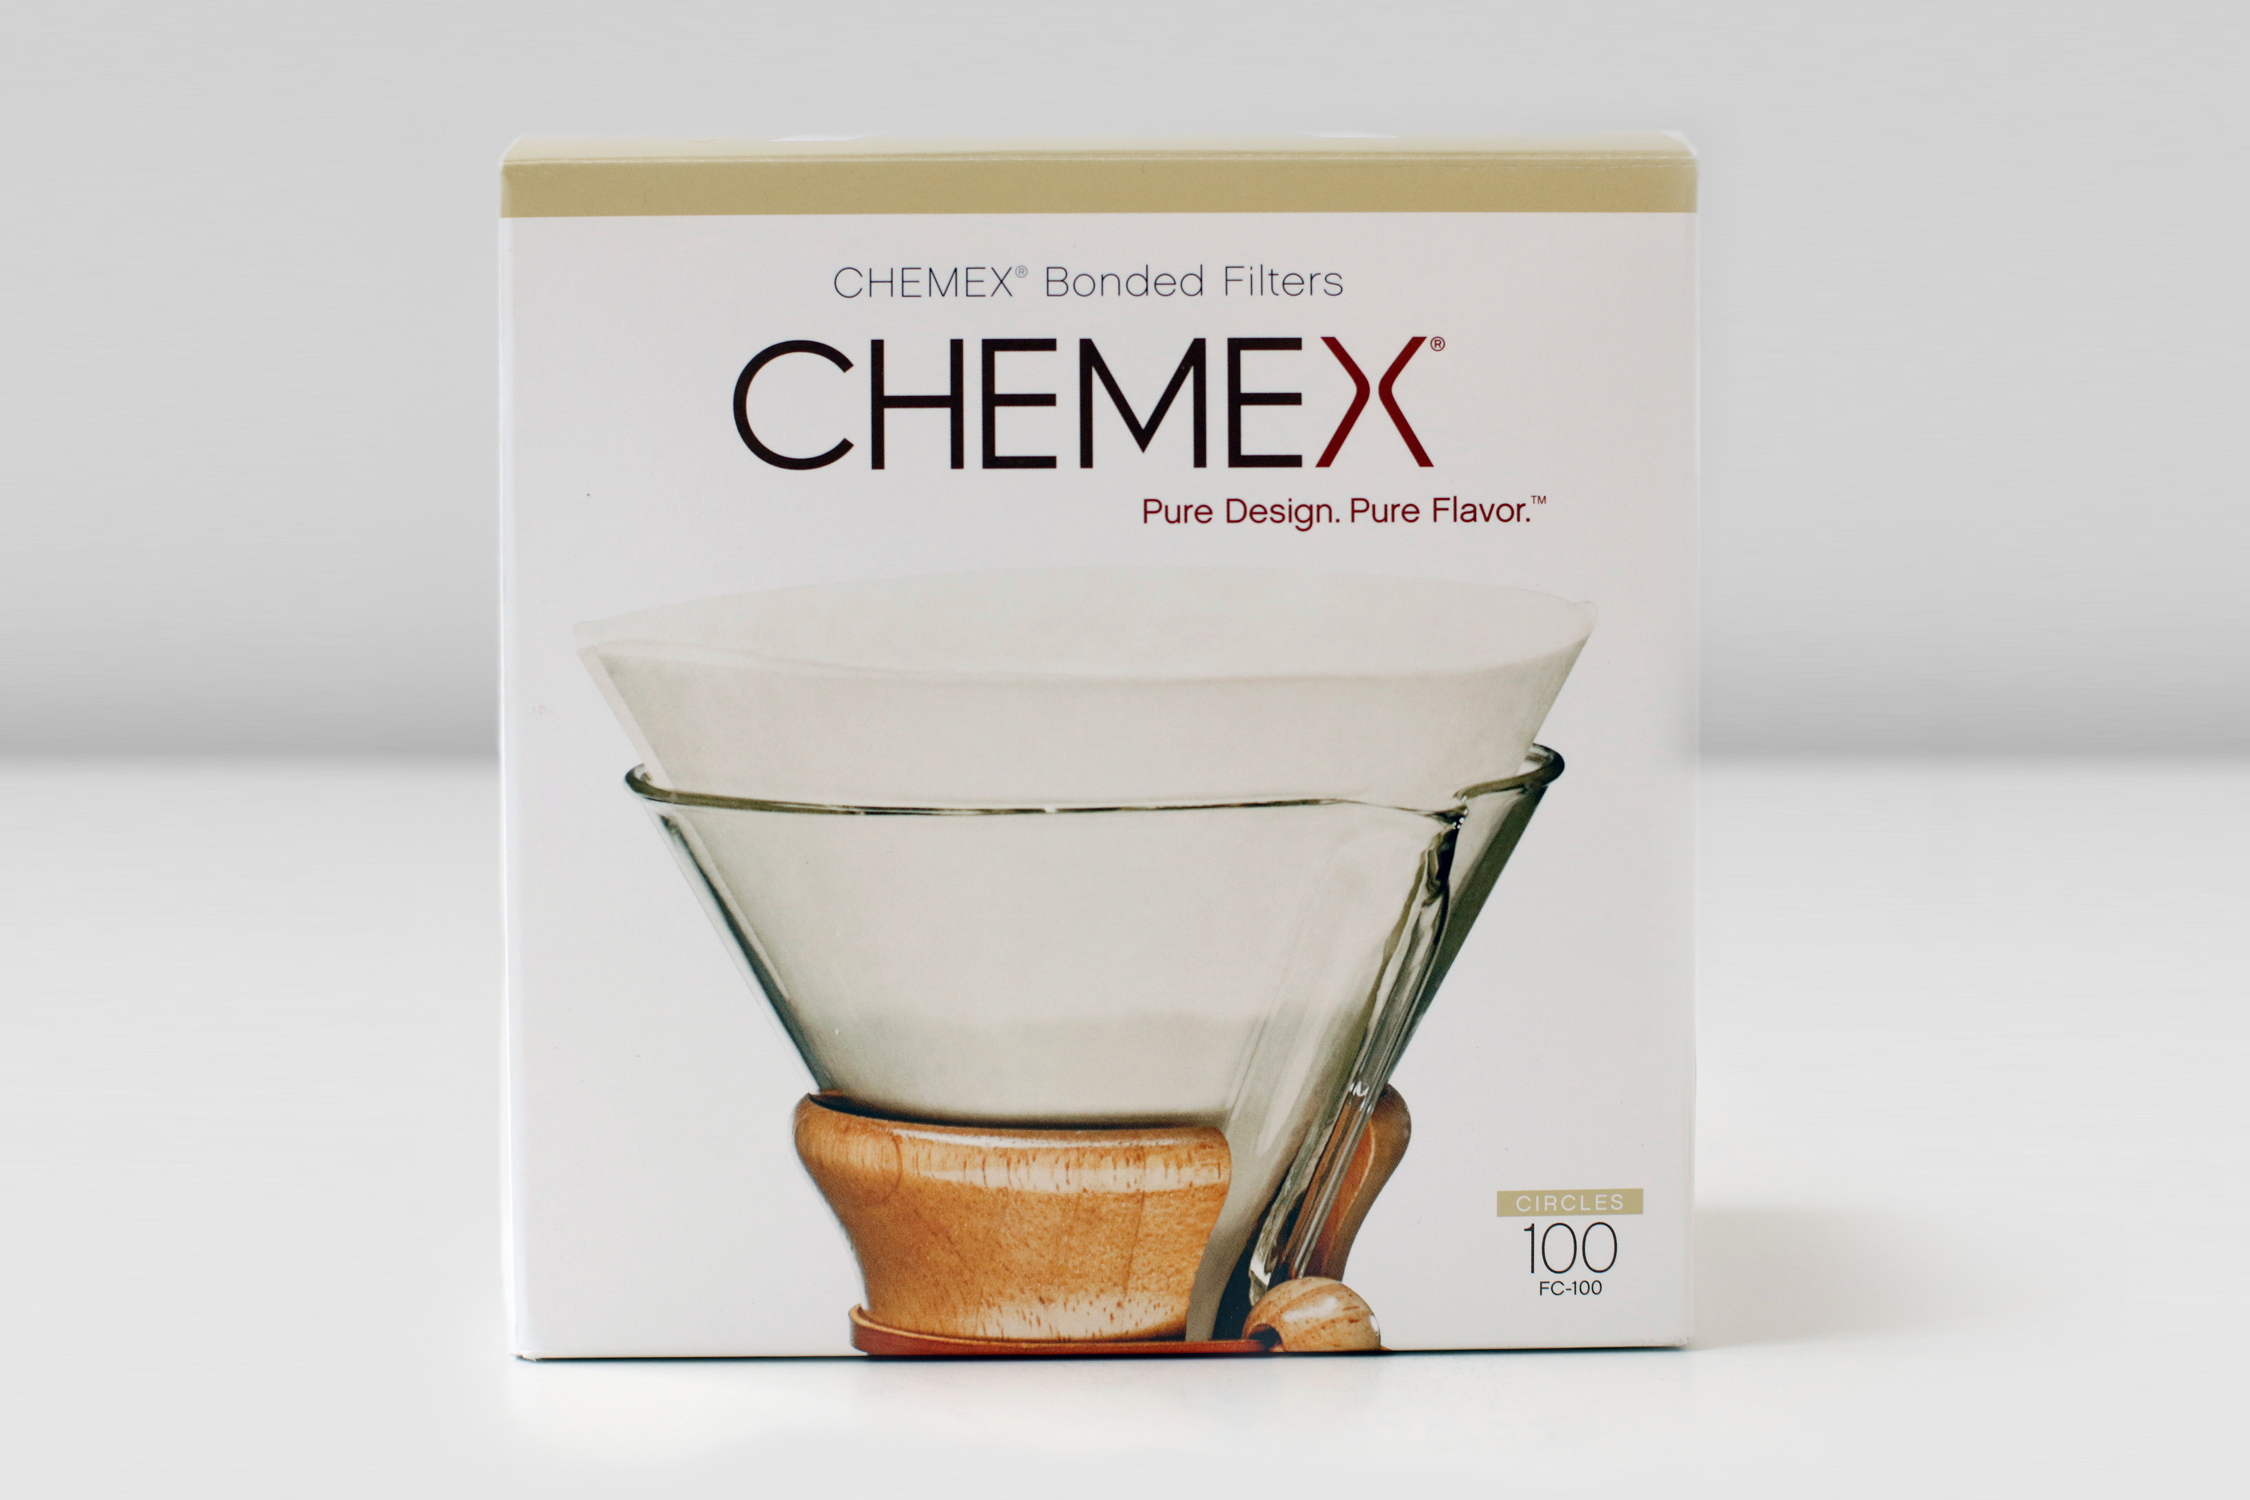 Chemex Coffee Maker Sizes : Coffee Makers, Filters and Brewing Equipment - Caffe Nero Shop